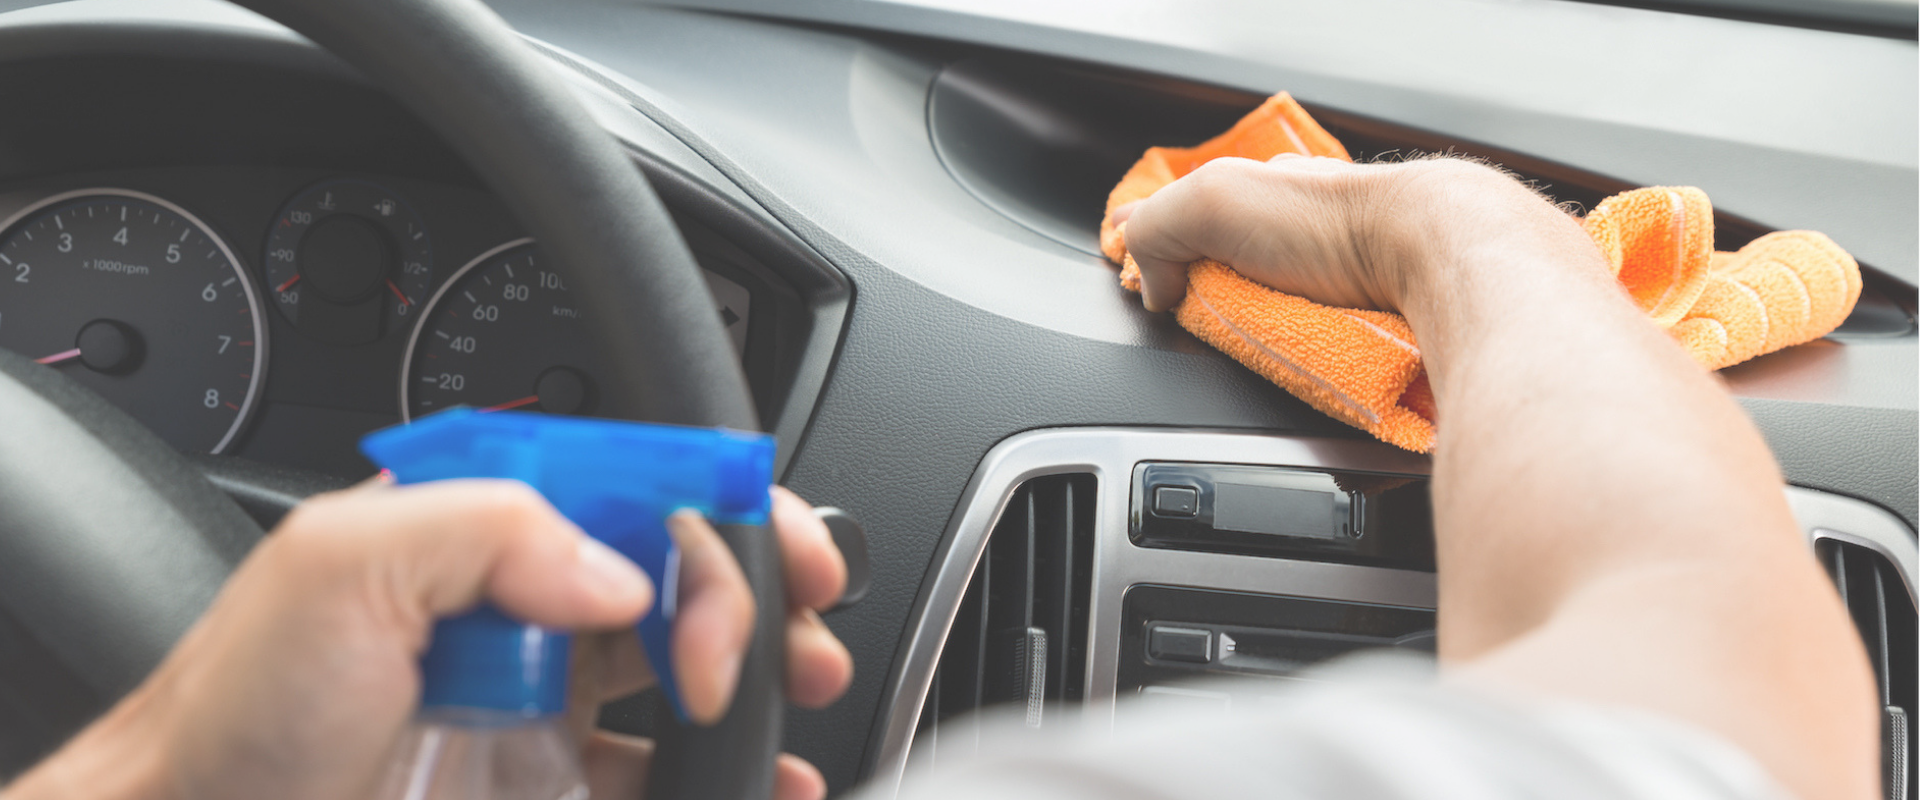 Is Your Car Hygiene Affecting Your Health?